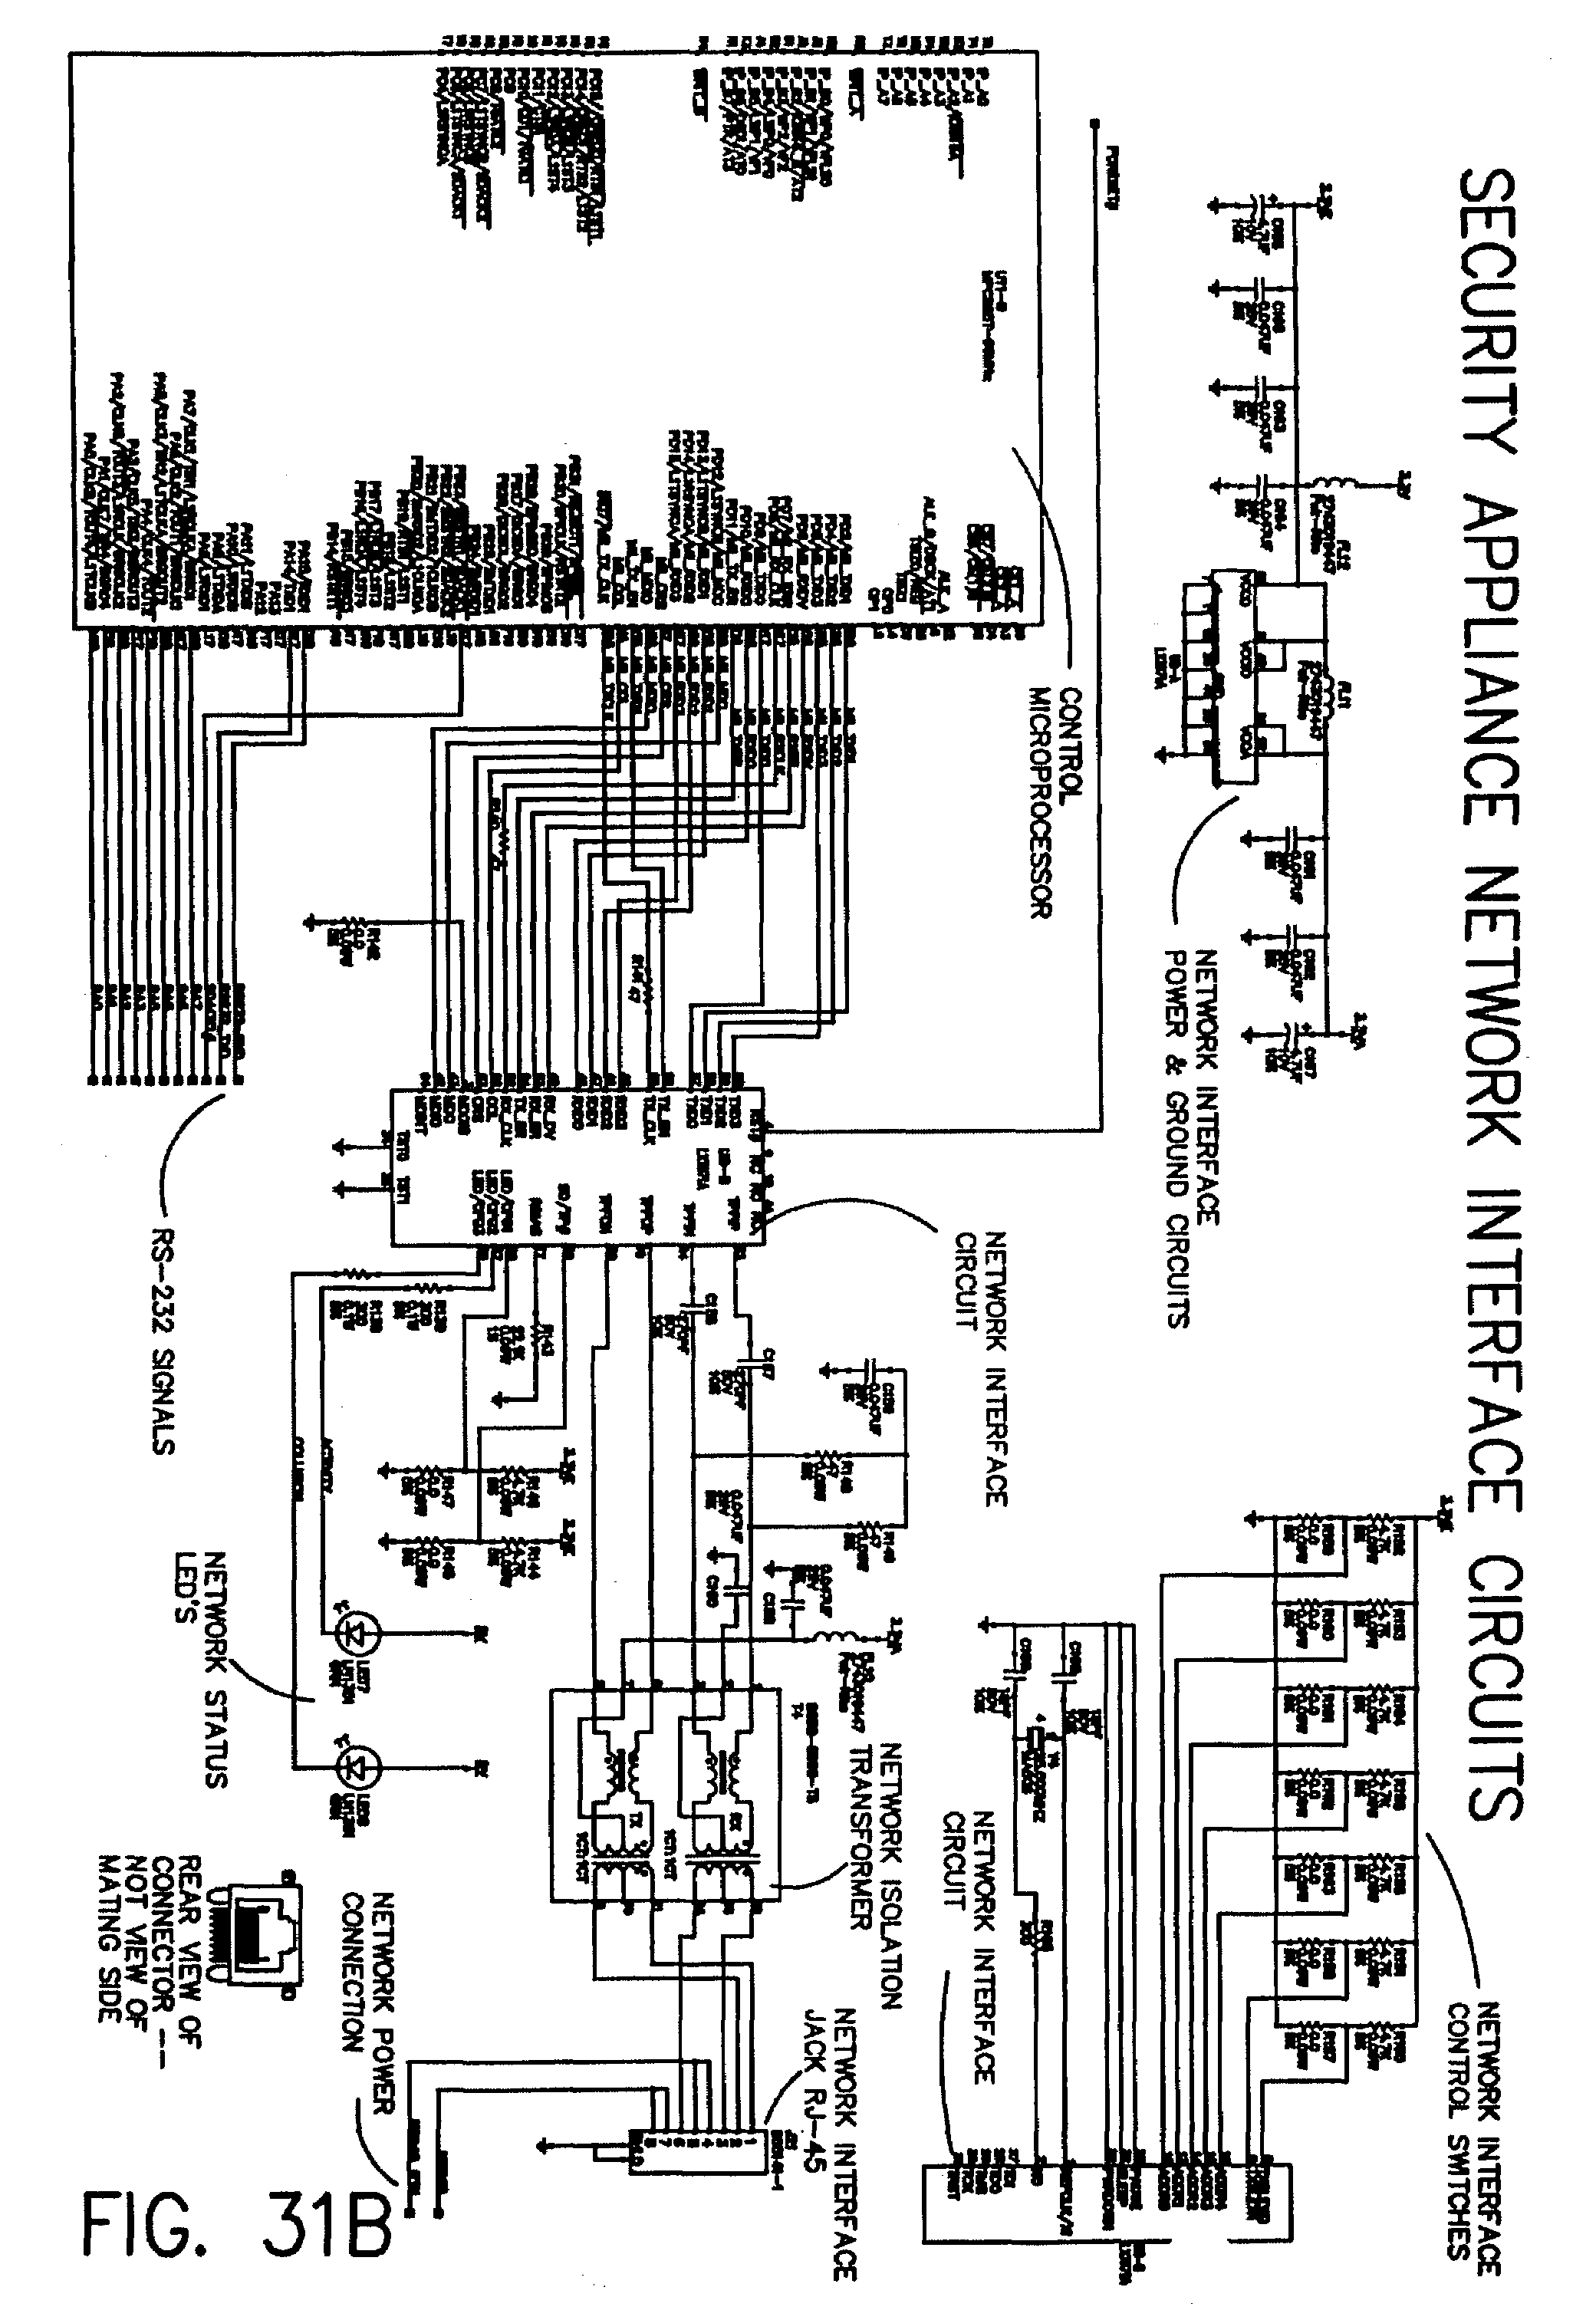 Patent Us 7428002 B2 Fig 2nd Simple Telephone Hybrid Circuit Images